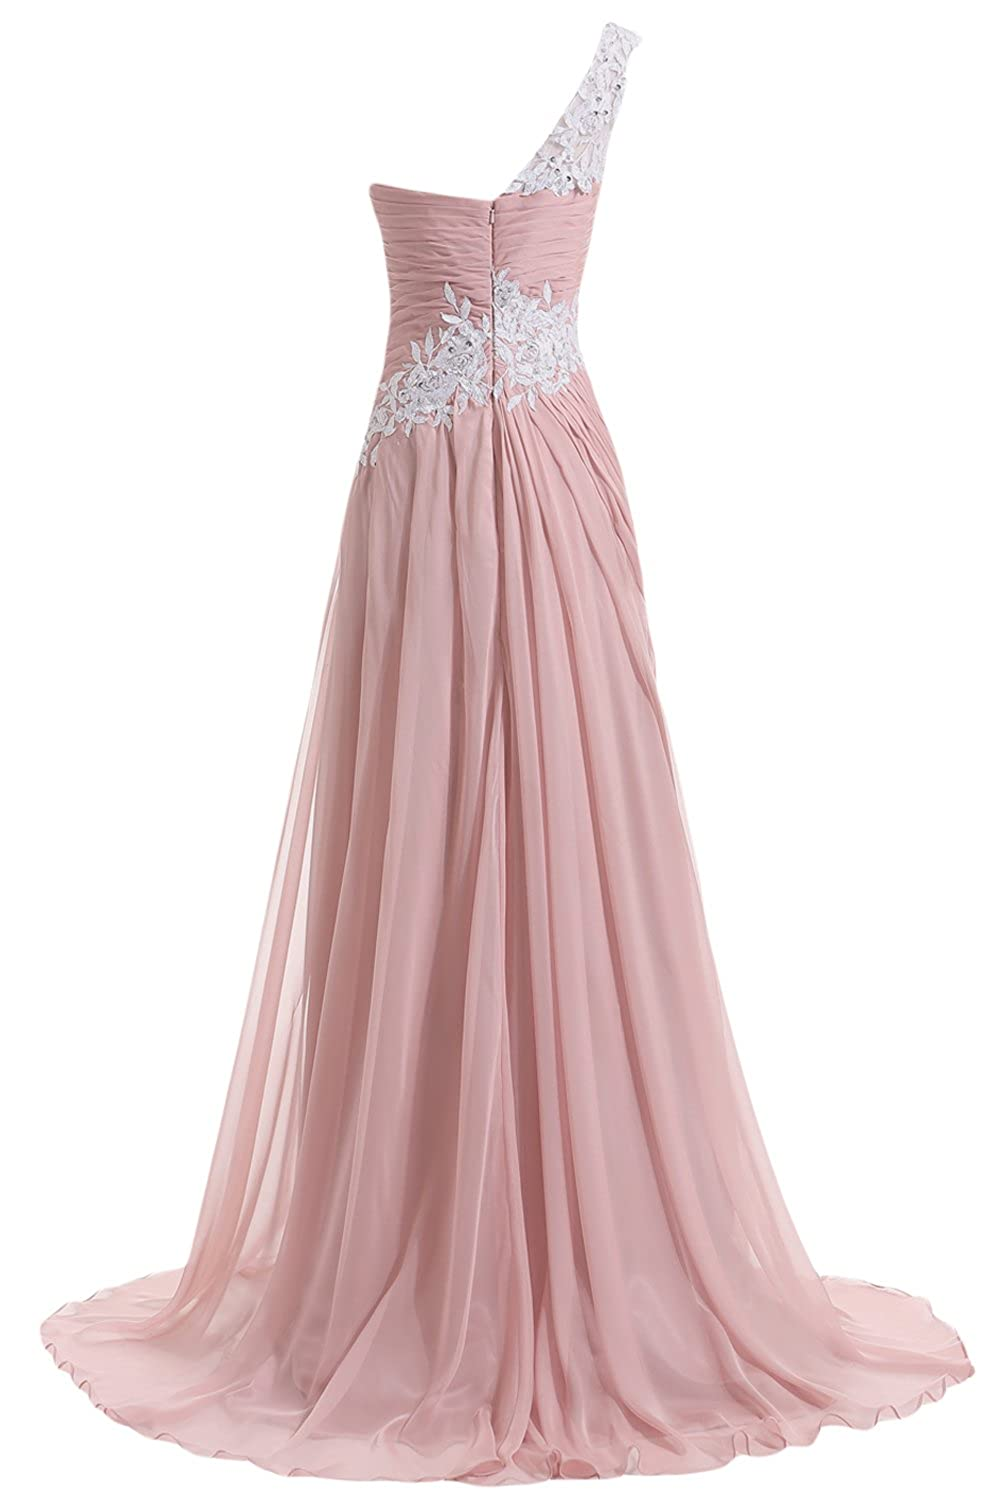 Sunvary new chiffon and applique long bridesmaid dresses evening sunvary new chiffon and applique long bridesmaid dresses evening prom gowns at amazon womens clothing store ombrellifo Images